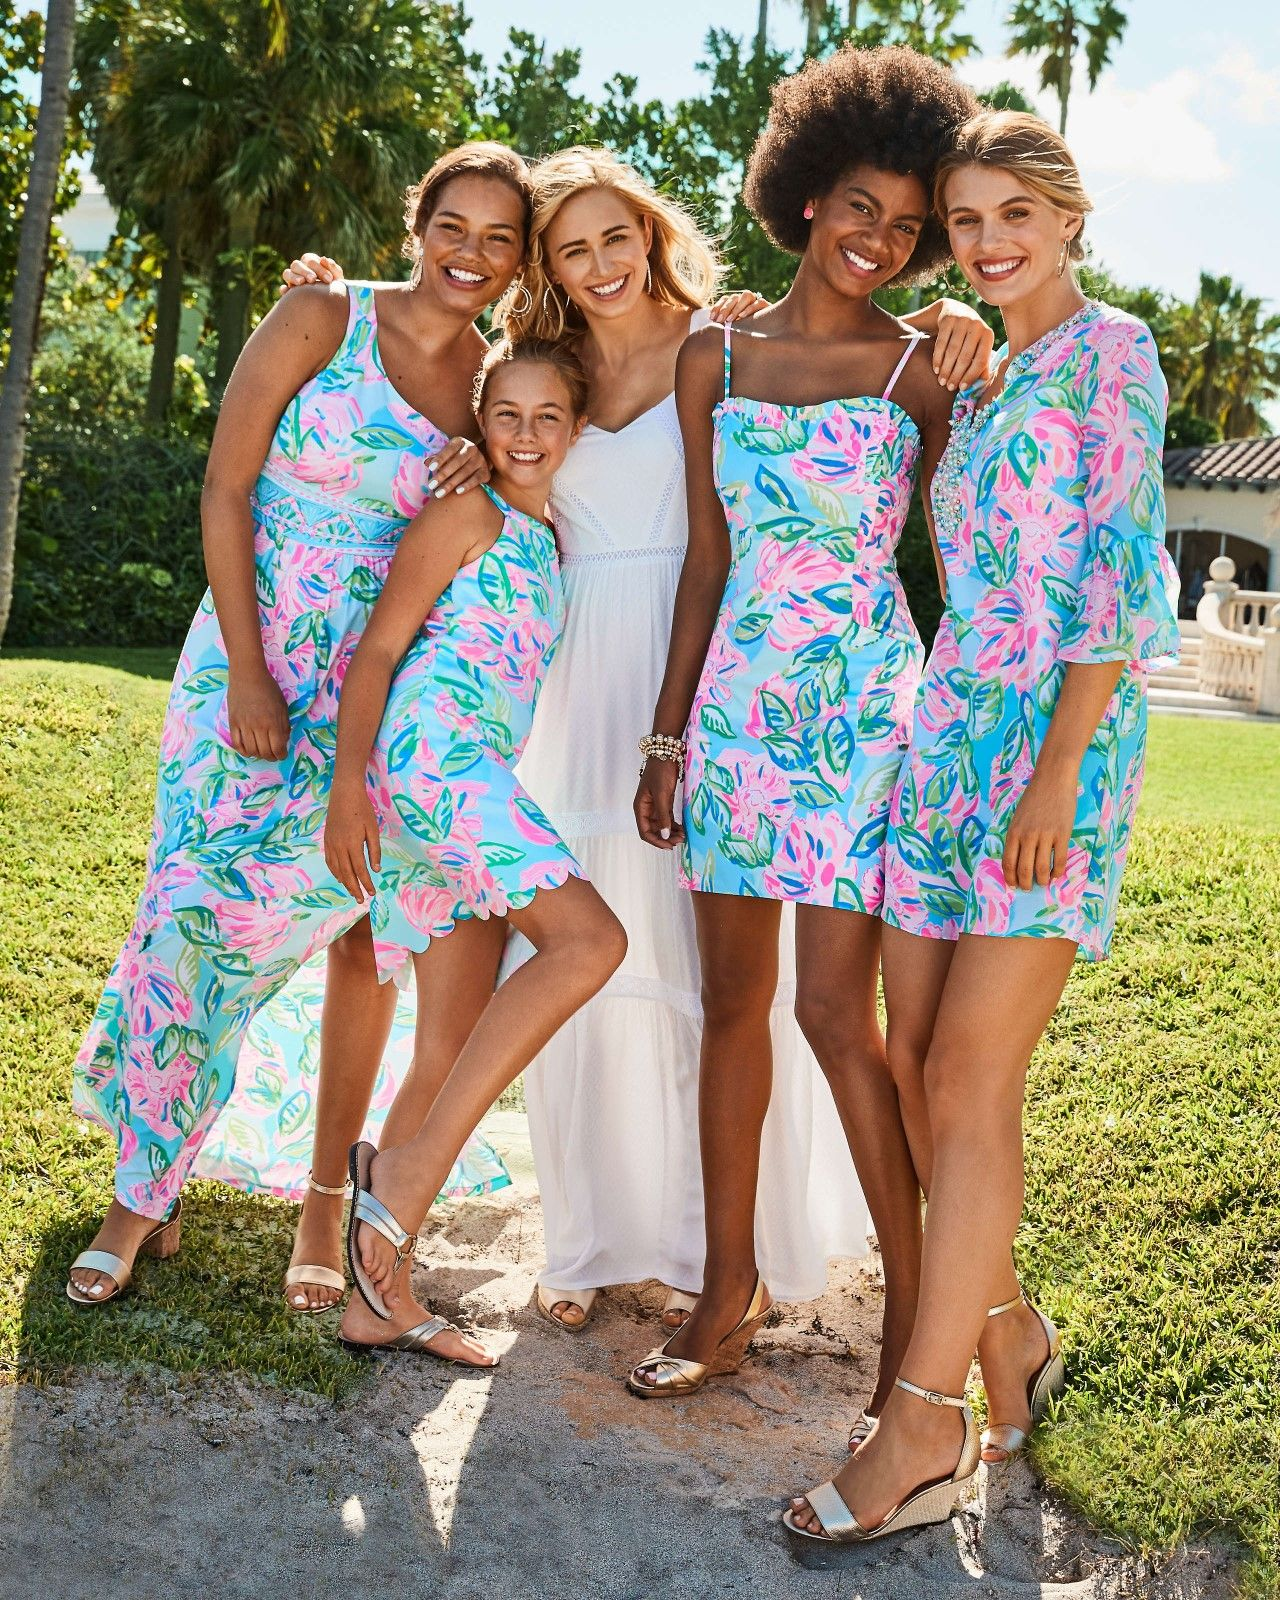 Lilly Pulitzer Dresses For Weddings Dress For The Wedding Wedding Guest Outfit Lilly Pulitzer Outfits Wedding Dress Inspiration [ 1600 x 1280 Pixel ]